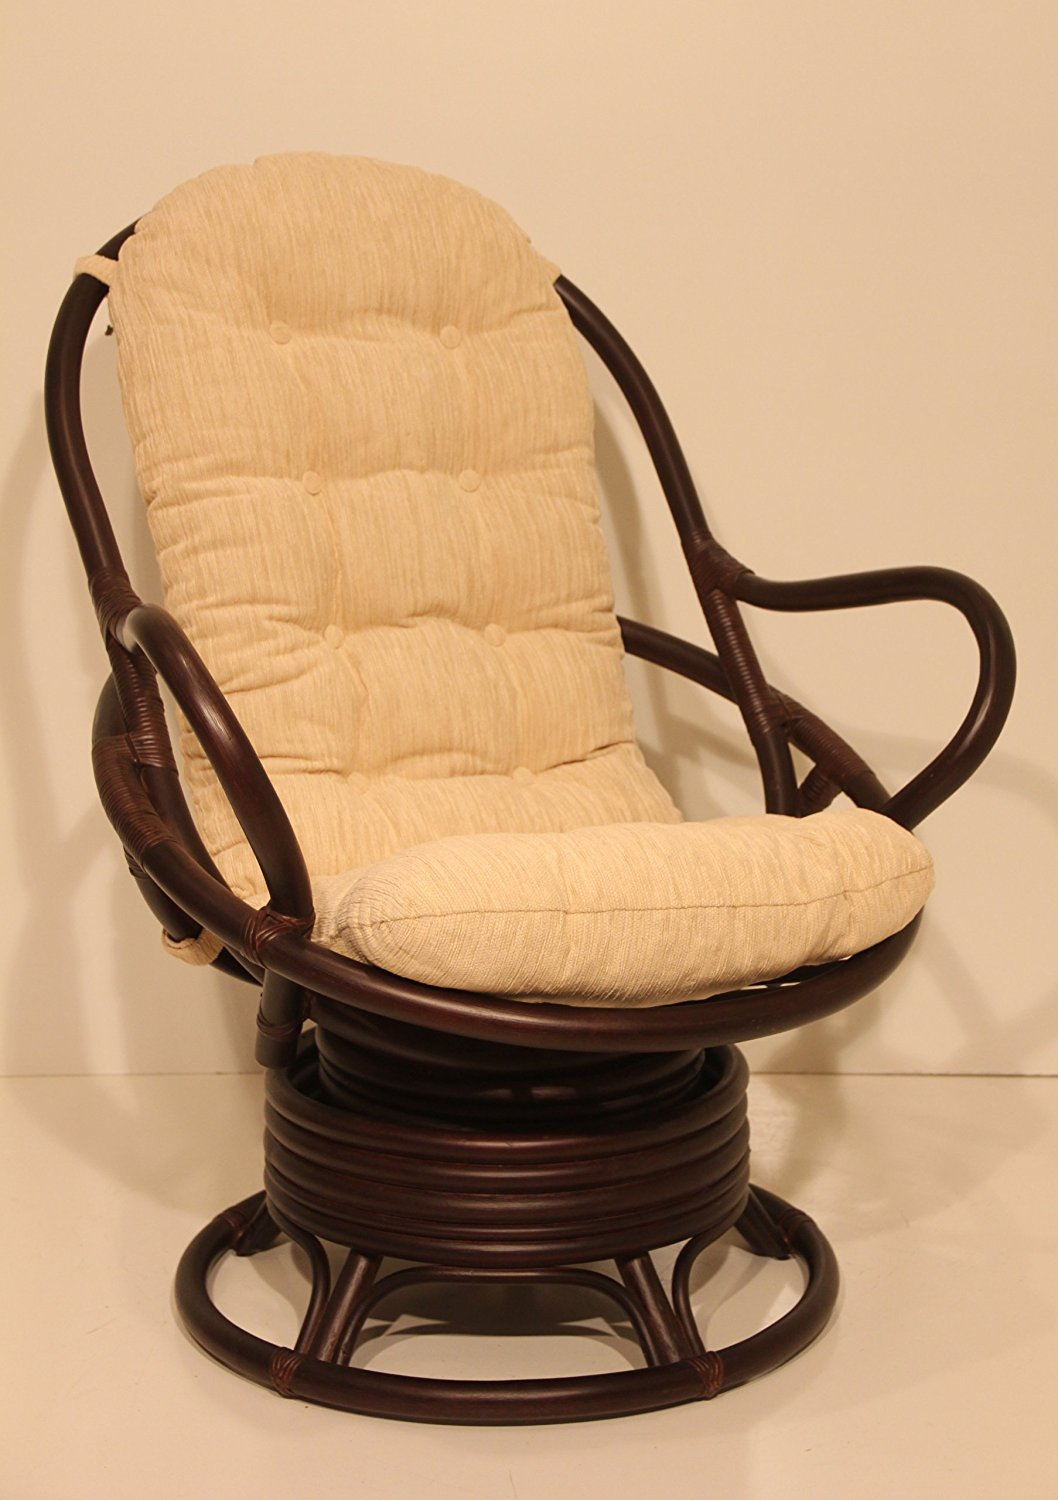 Rattan Swivel Rocker | Cushion for Rattan Swivel Rocker | Outdoor Wicker Swivel Rocker